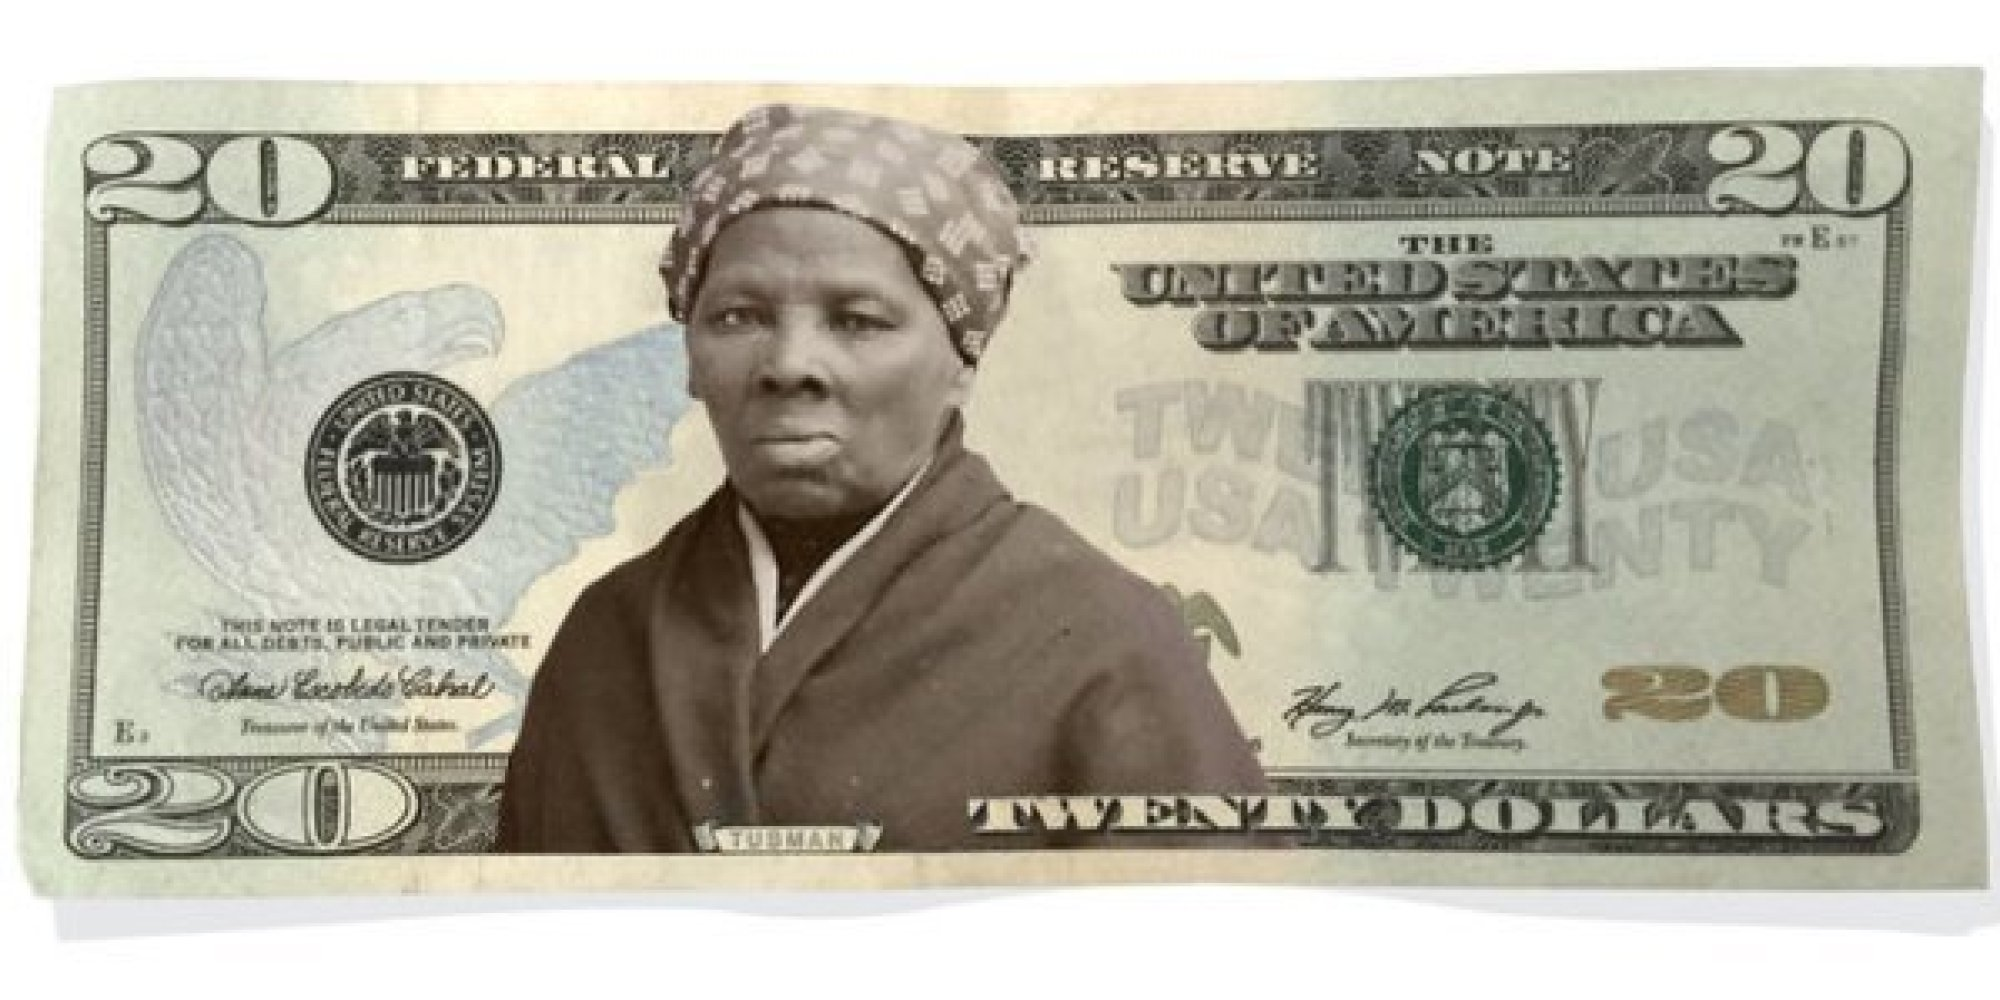 出典:http://www.huffingtonpost.jp/2016/04/22/why-harriet-tubman-on-the-20-bill-is-so-significant_n_9756396.html